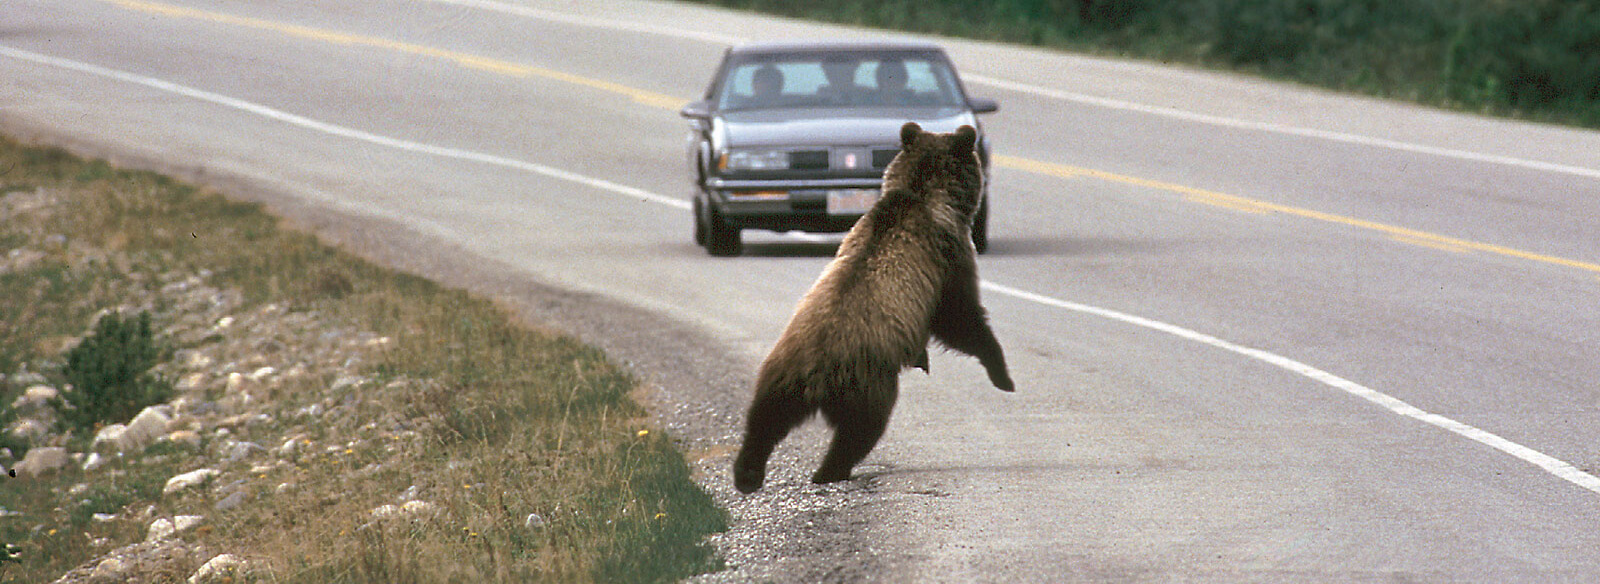 Photo of grizzly on road and incoming car